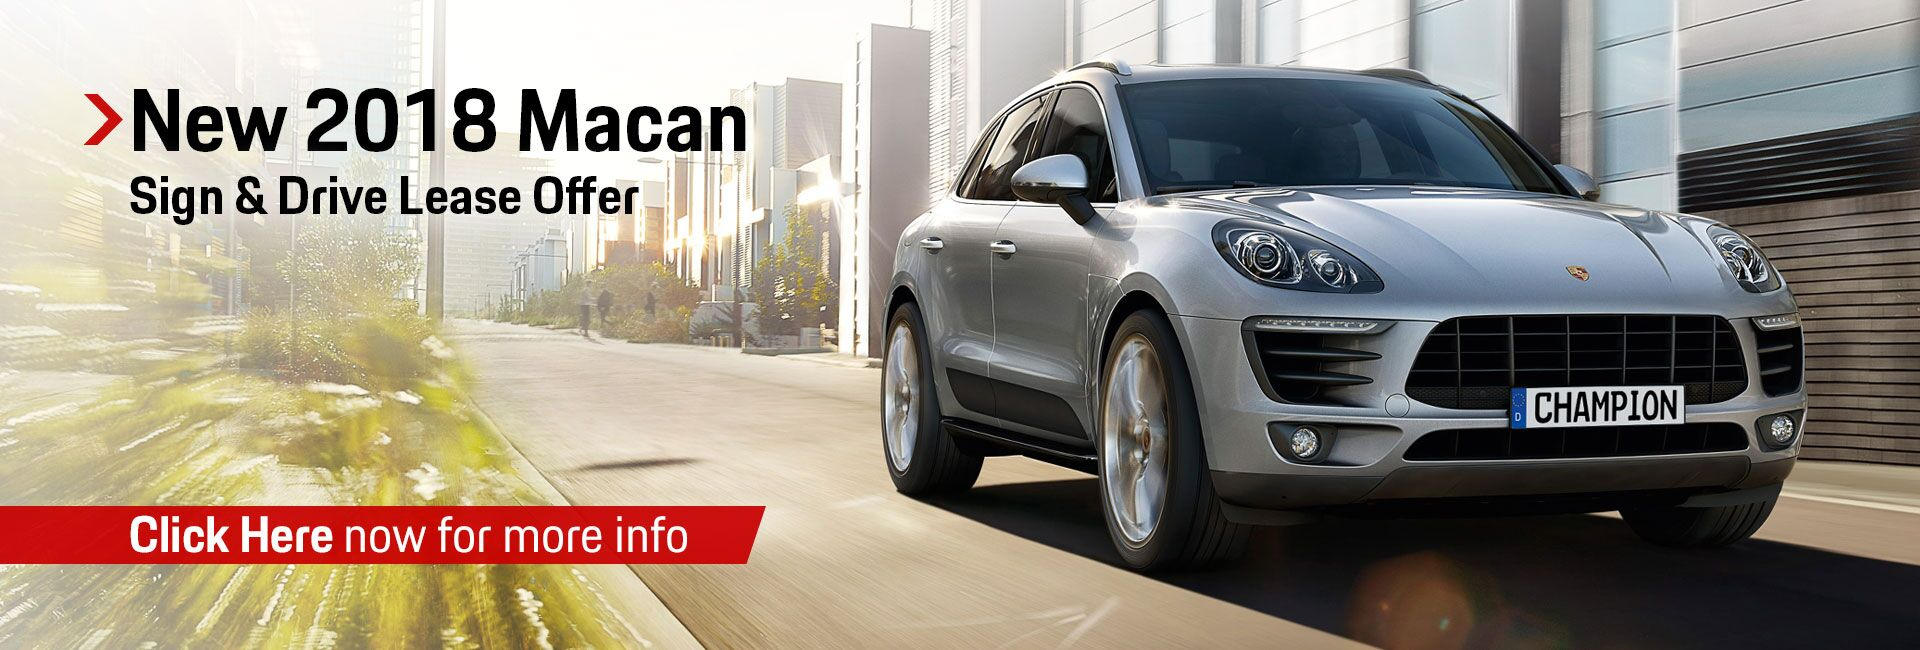 Sign and Drive Macan